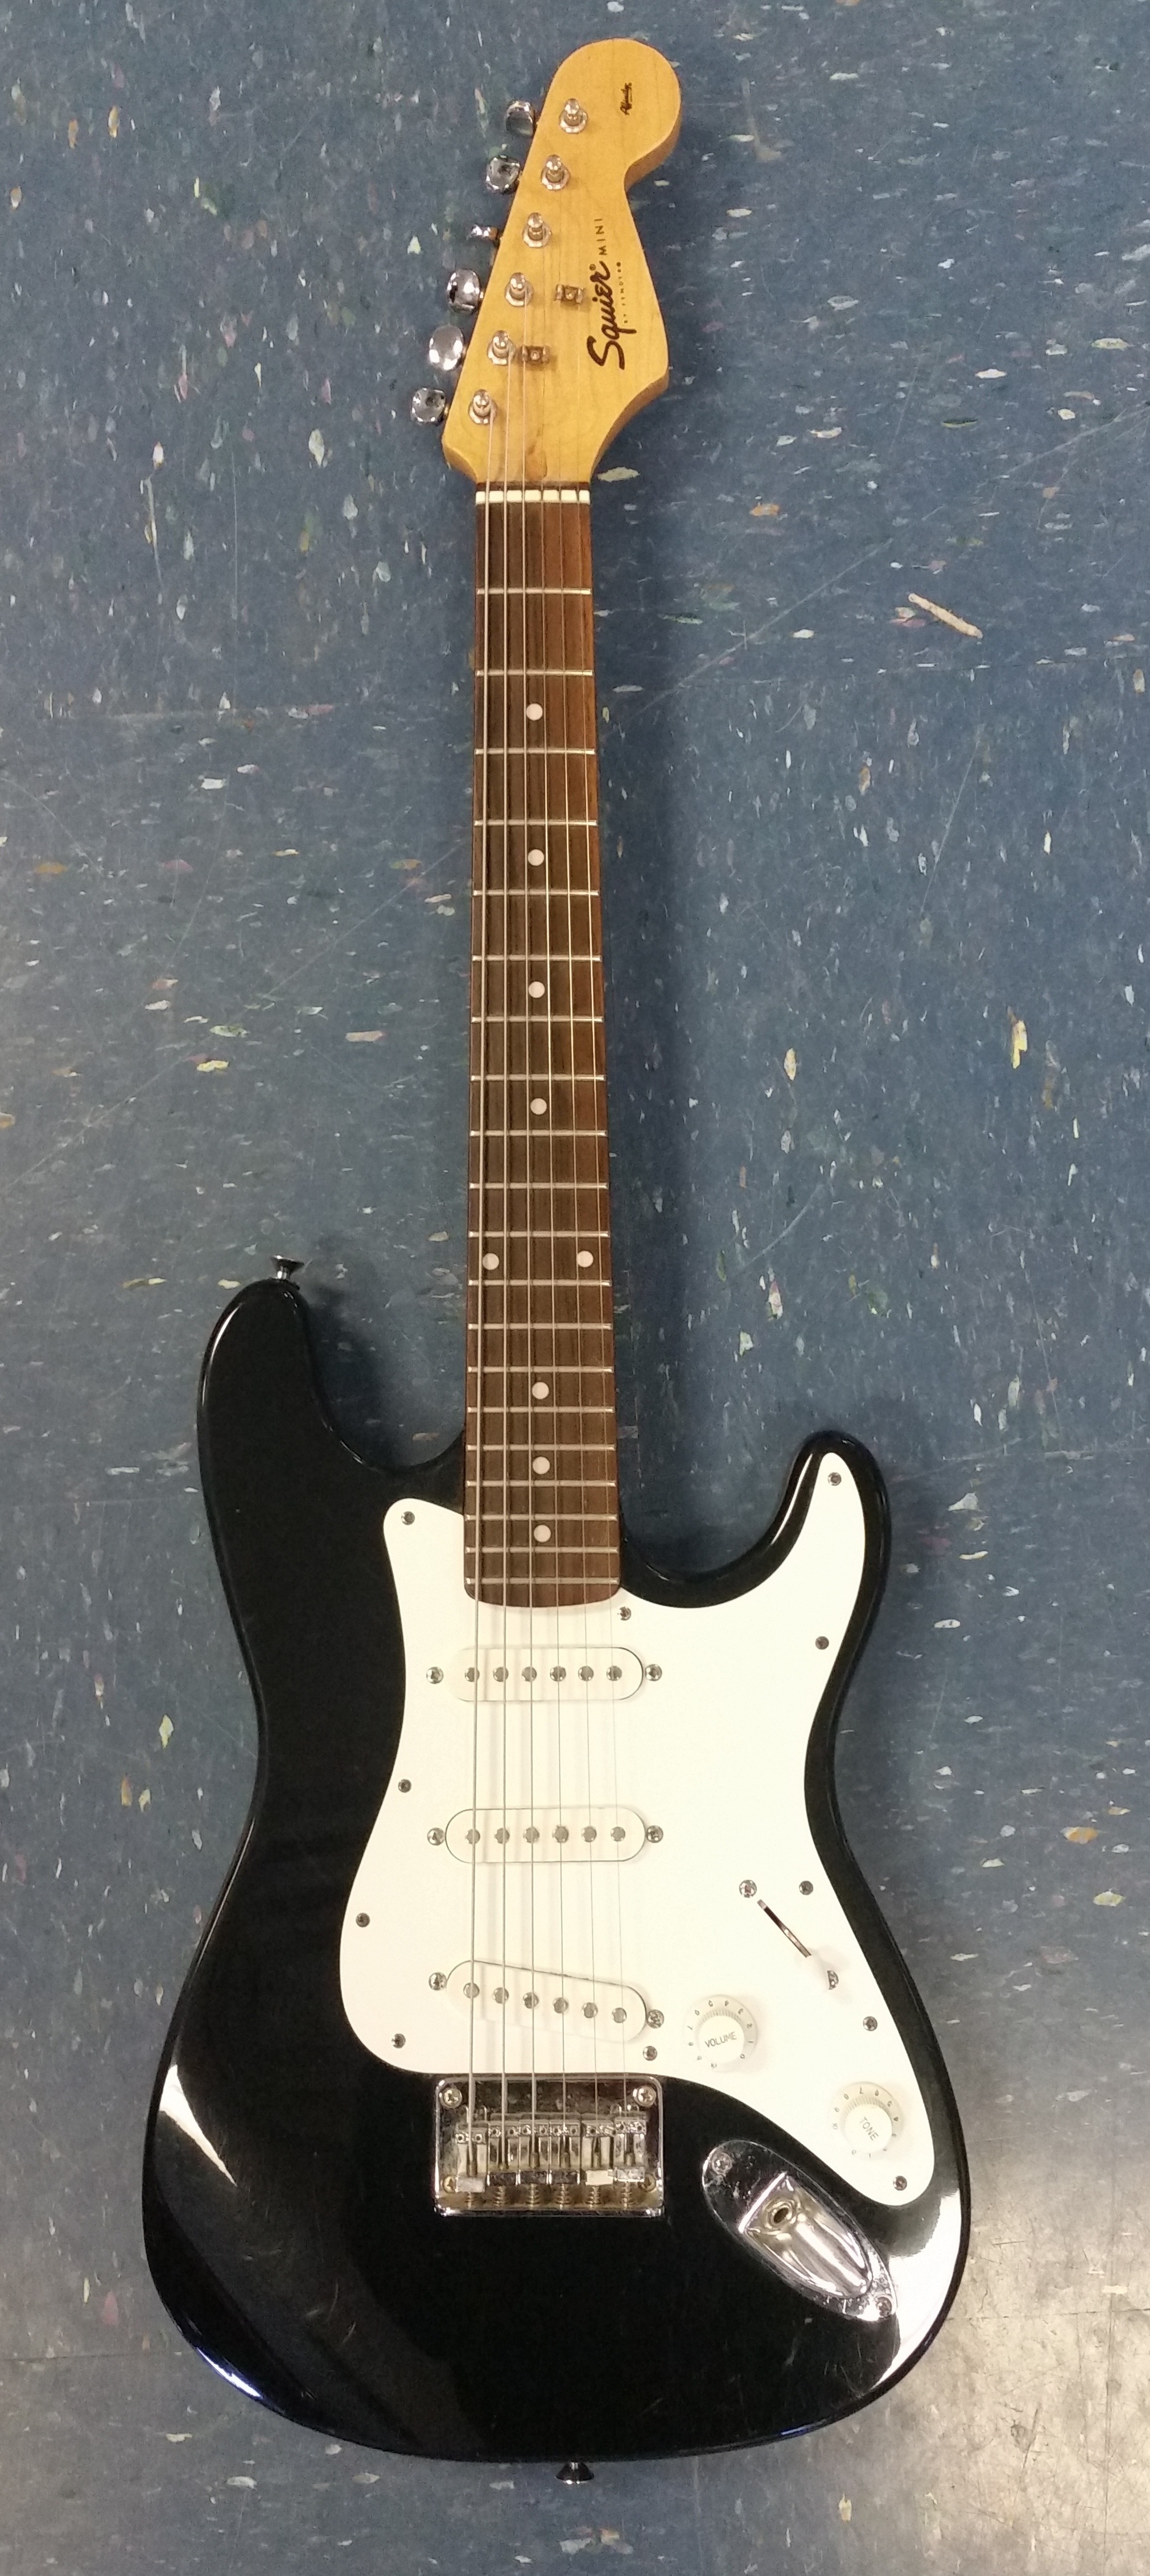 SQUIER BY FENDER MINI BLACK ELECTRIC GUITAR